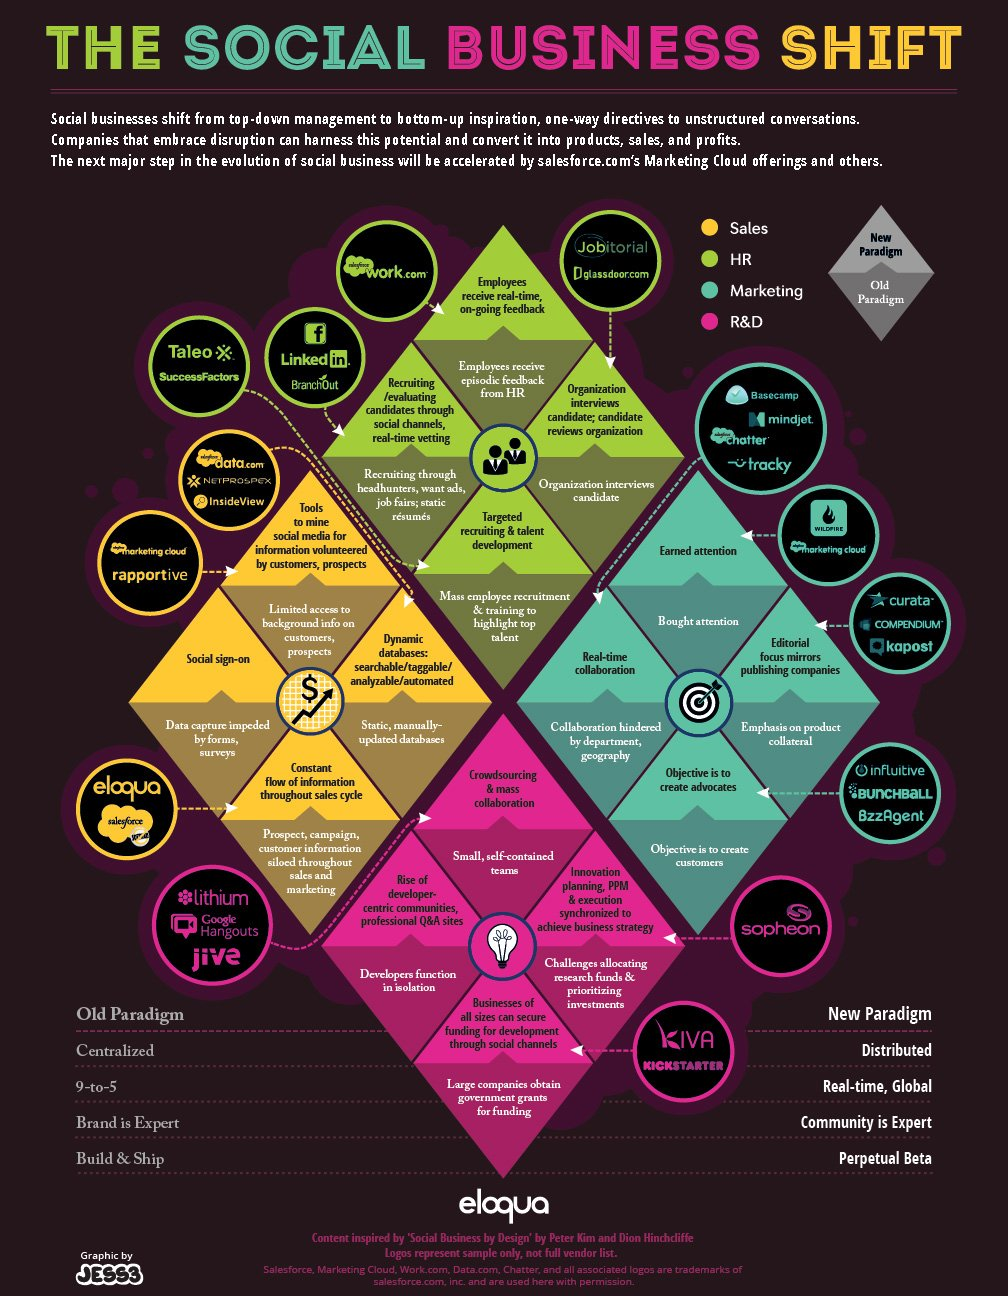 Eloqua and Jess3 Social Media Business Shift infographic